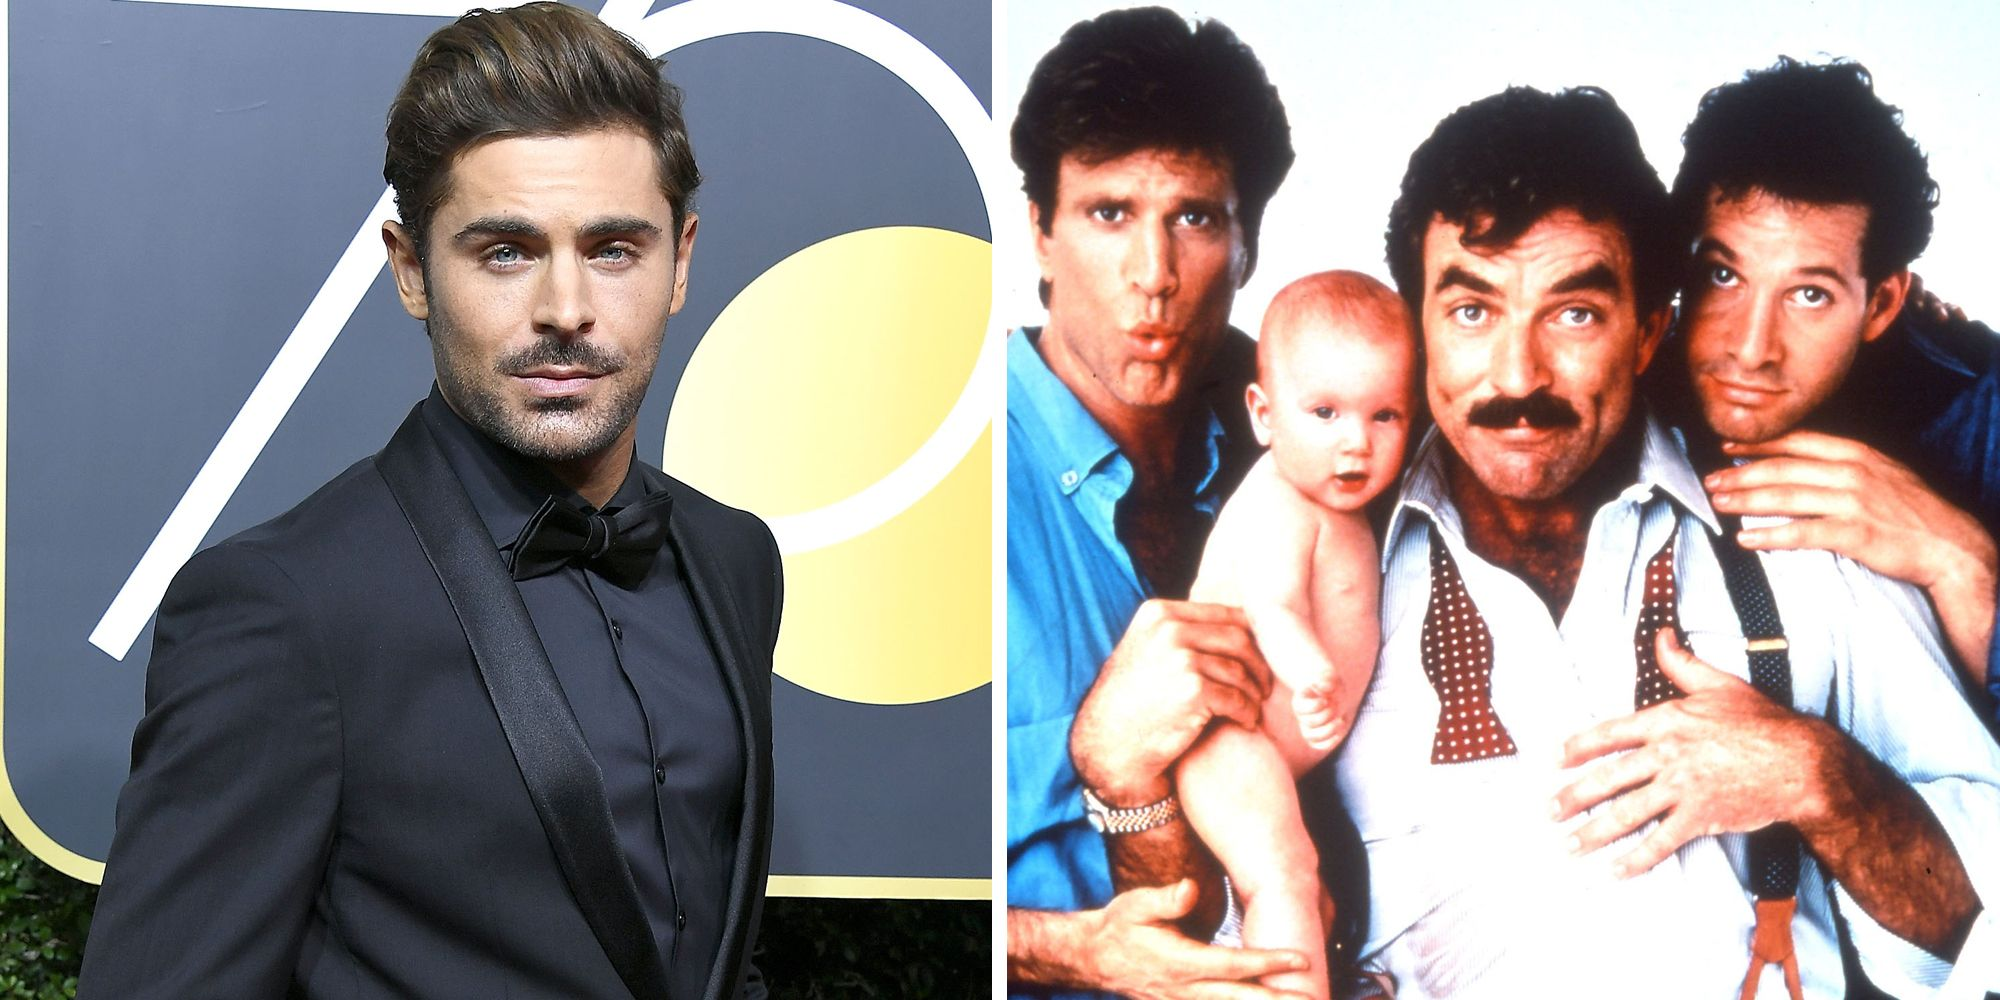 Three Men and a Baby Remake Guide to Release Date, Cast News and Spoilers